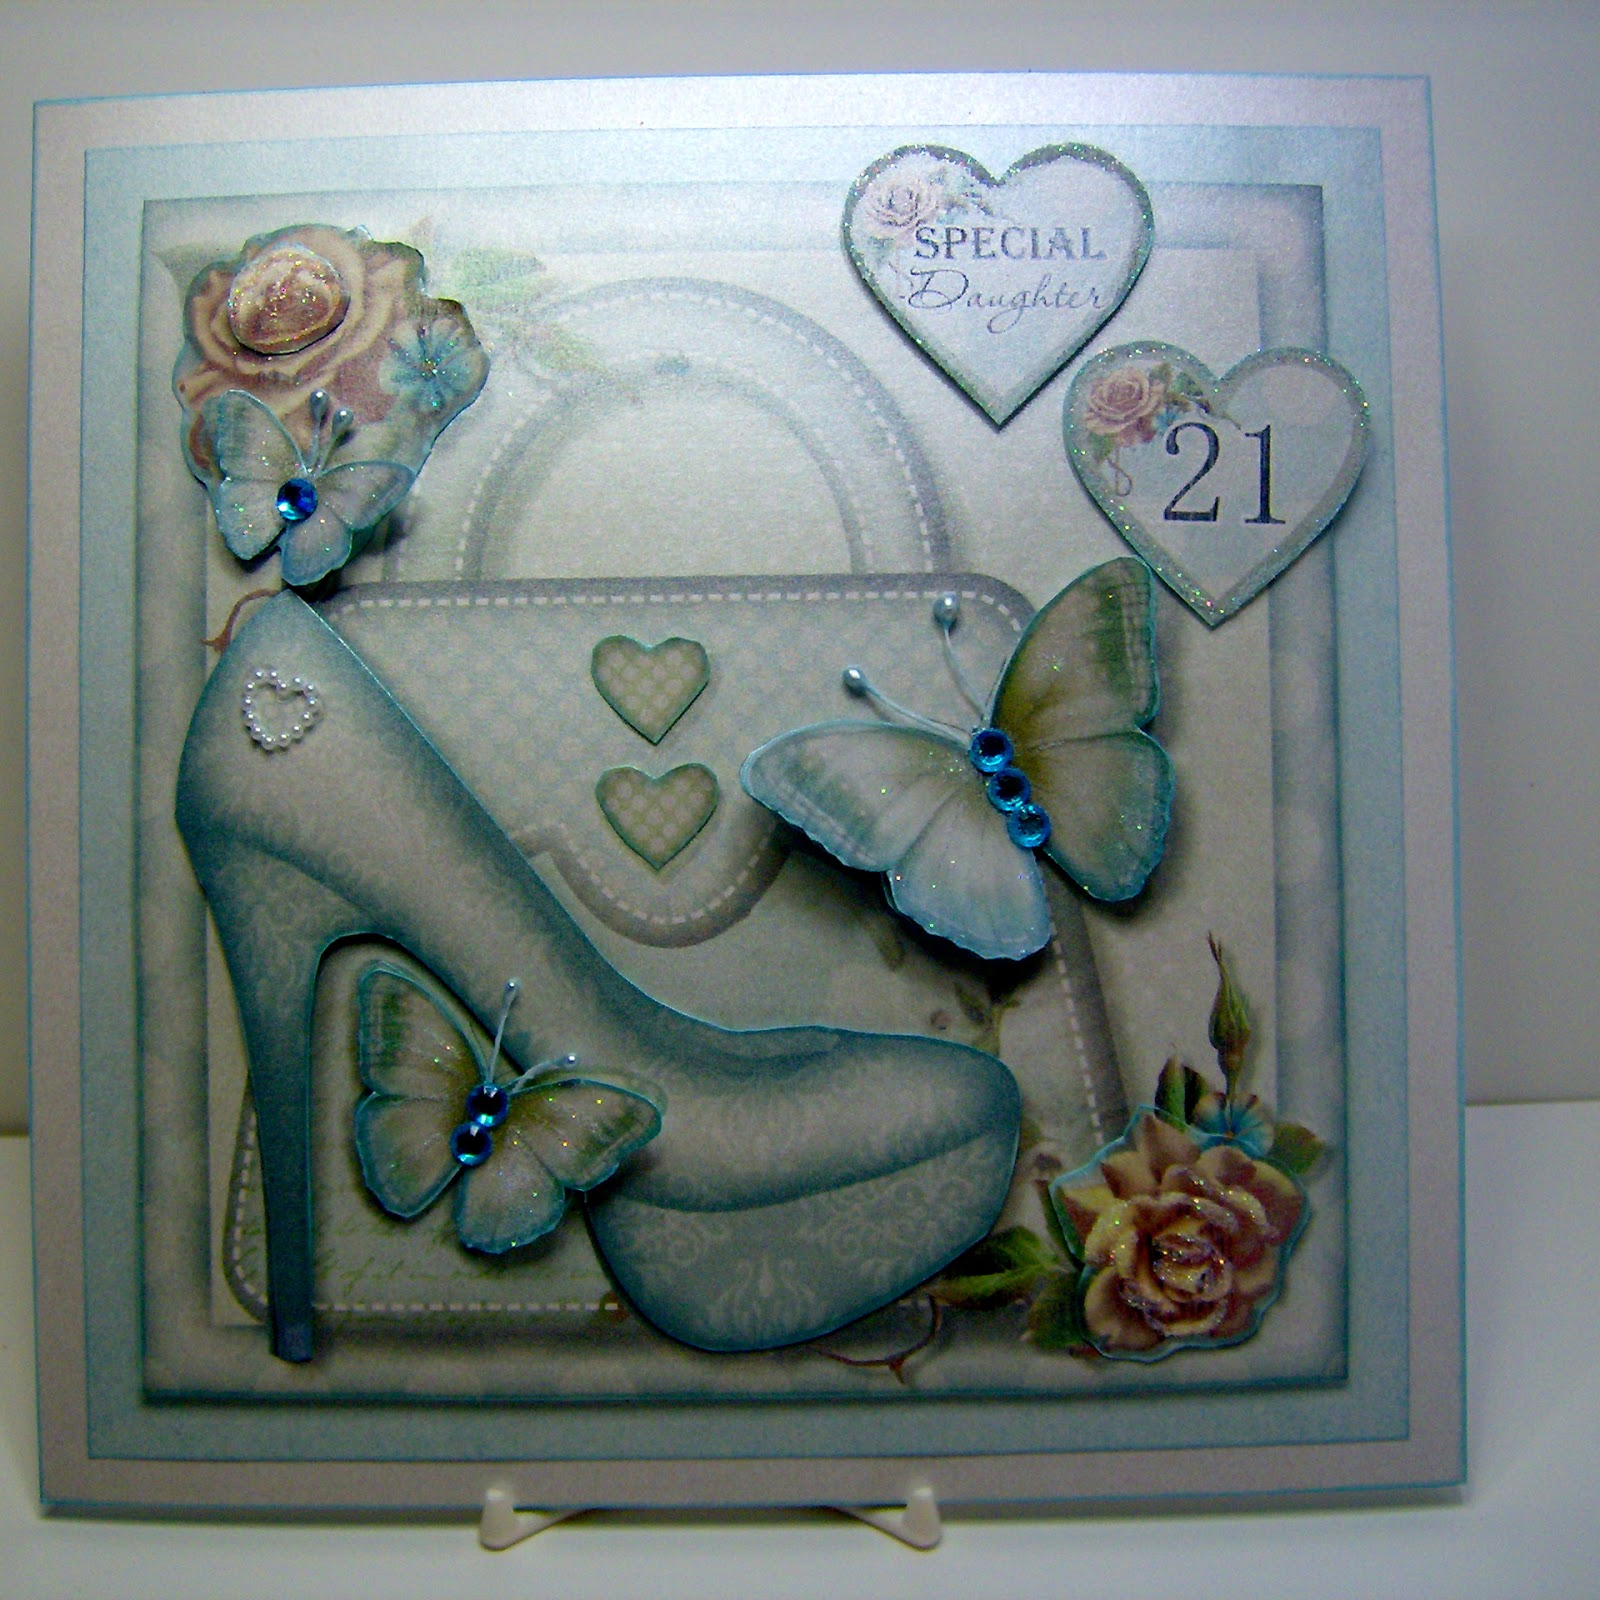 This Is A 8x8 Size Card And Box To Fit Wonderful Design For Young Lady Turning 21 I Printed It On Pearlised Stock Make